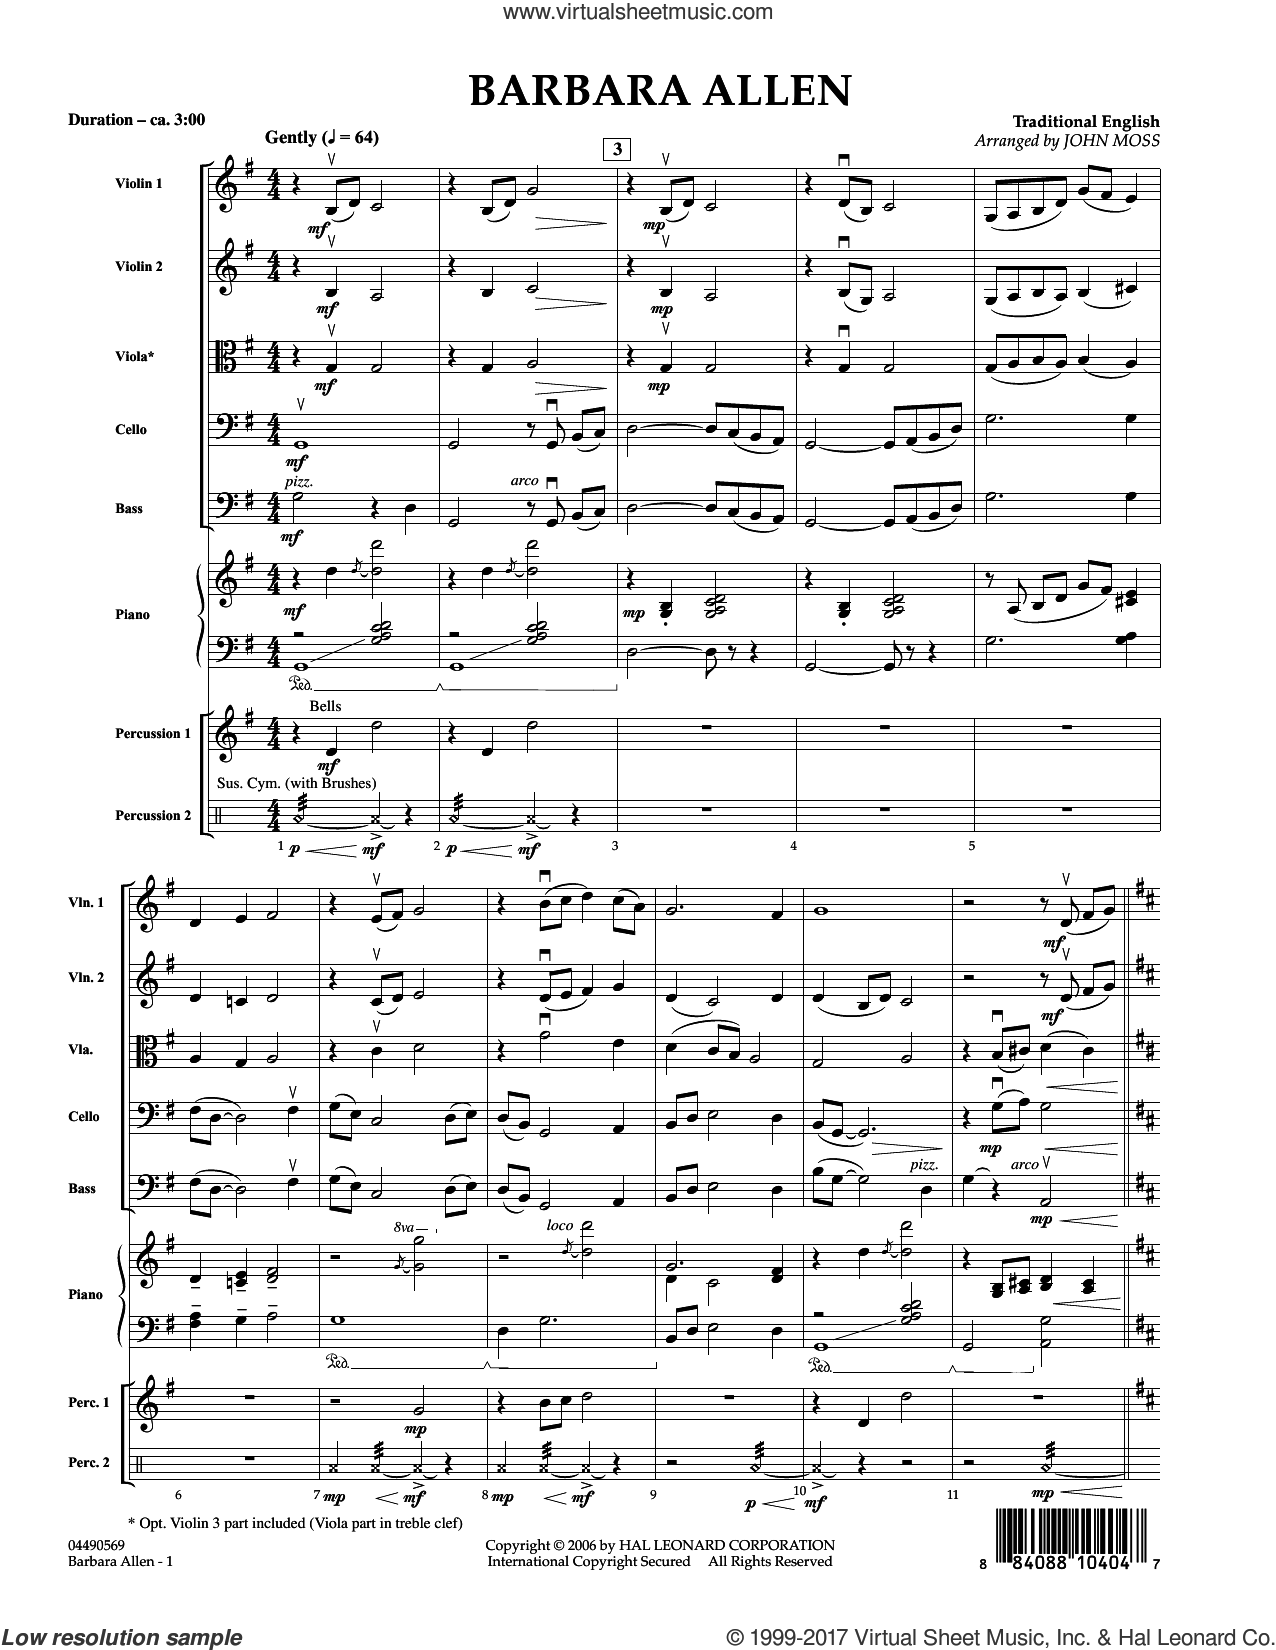 Barbara Allen (COMPLETE) sheet music for orchestra by John Moss, intermediate skill level